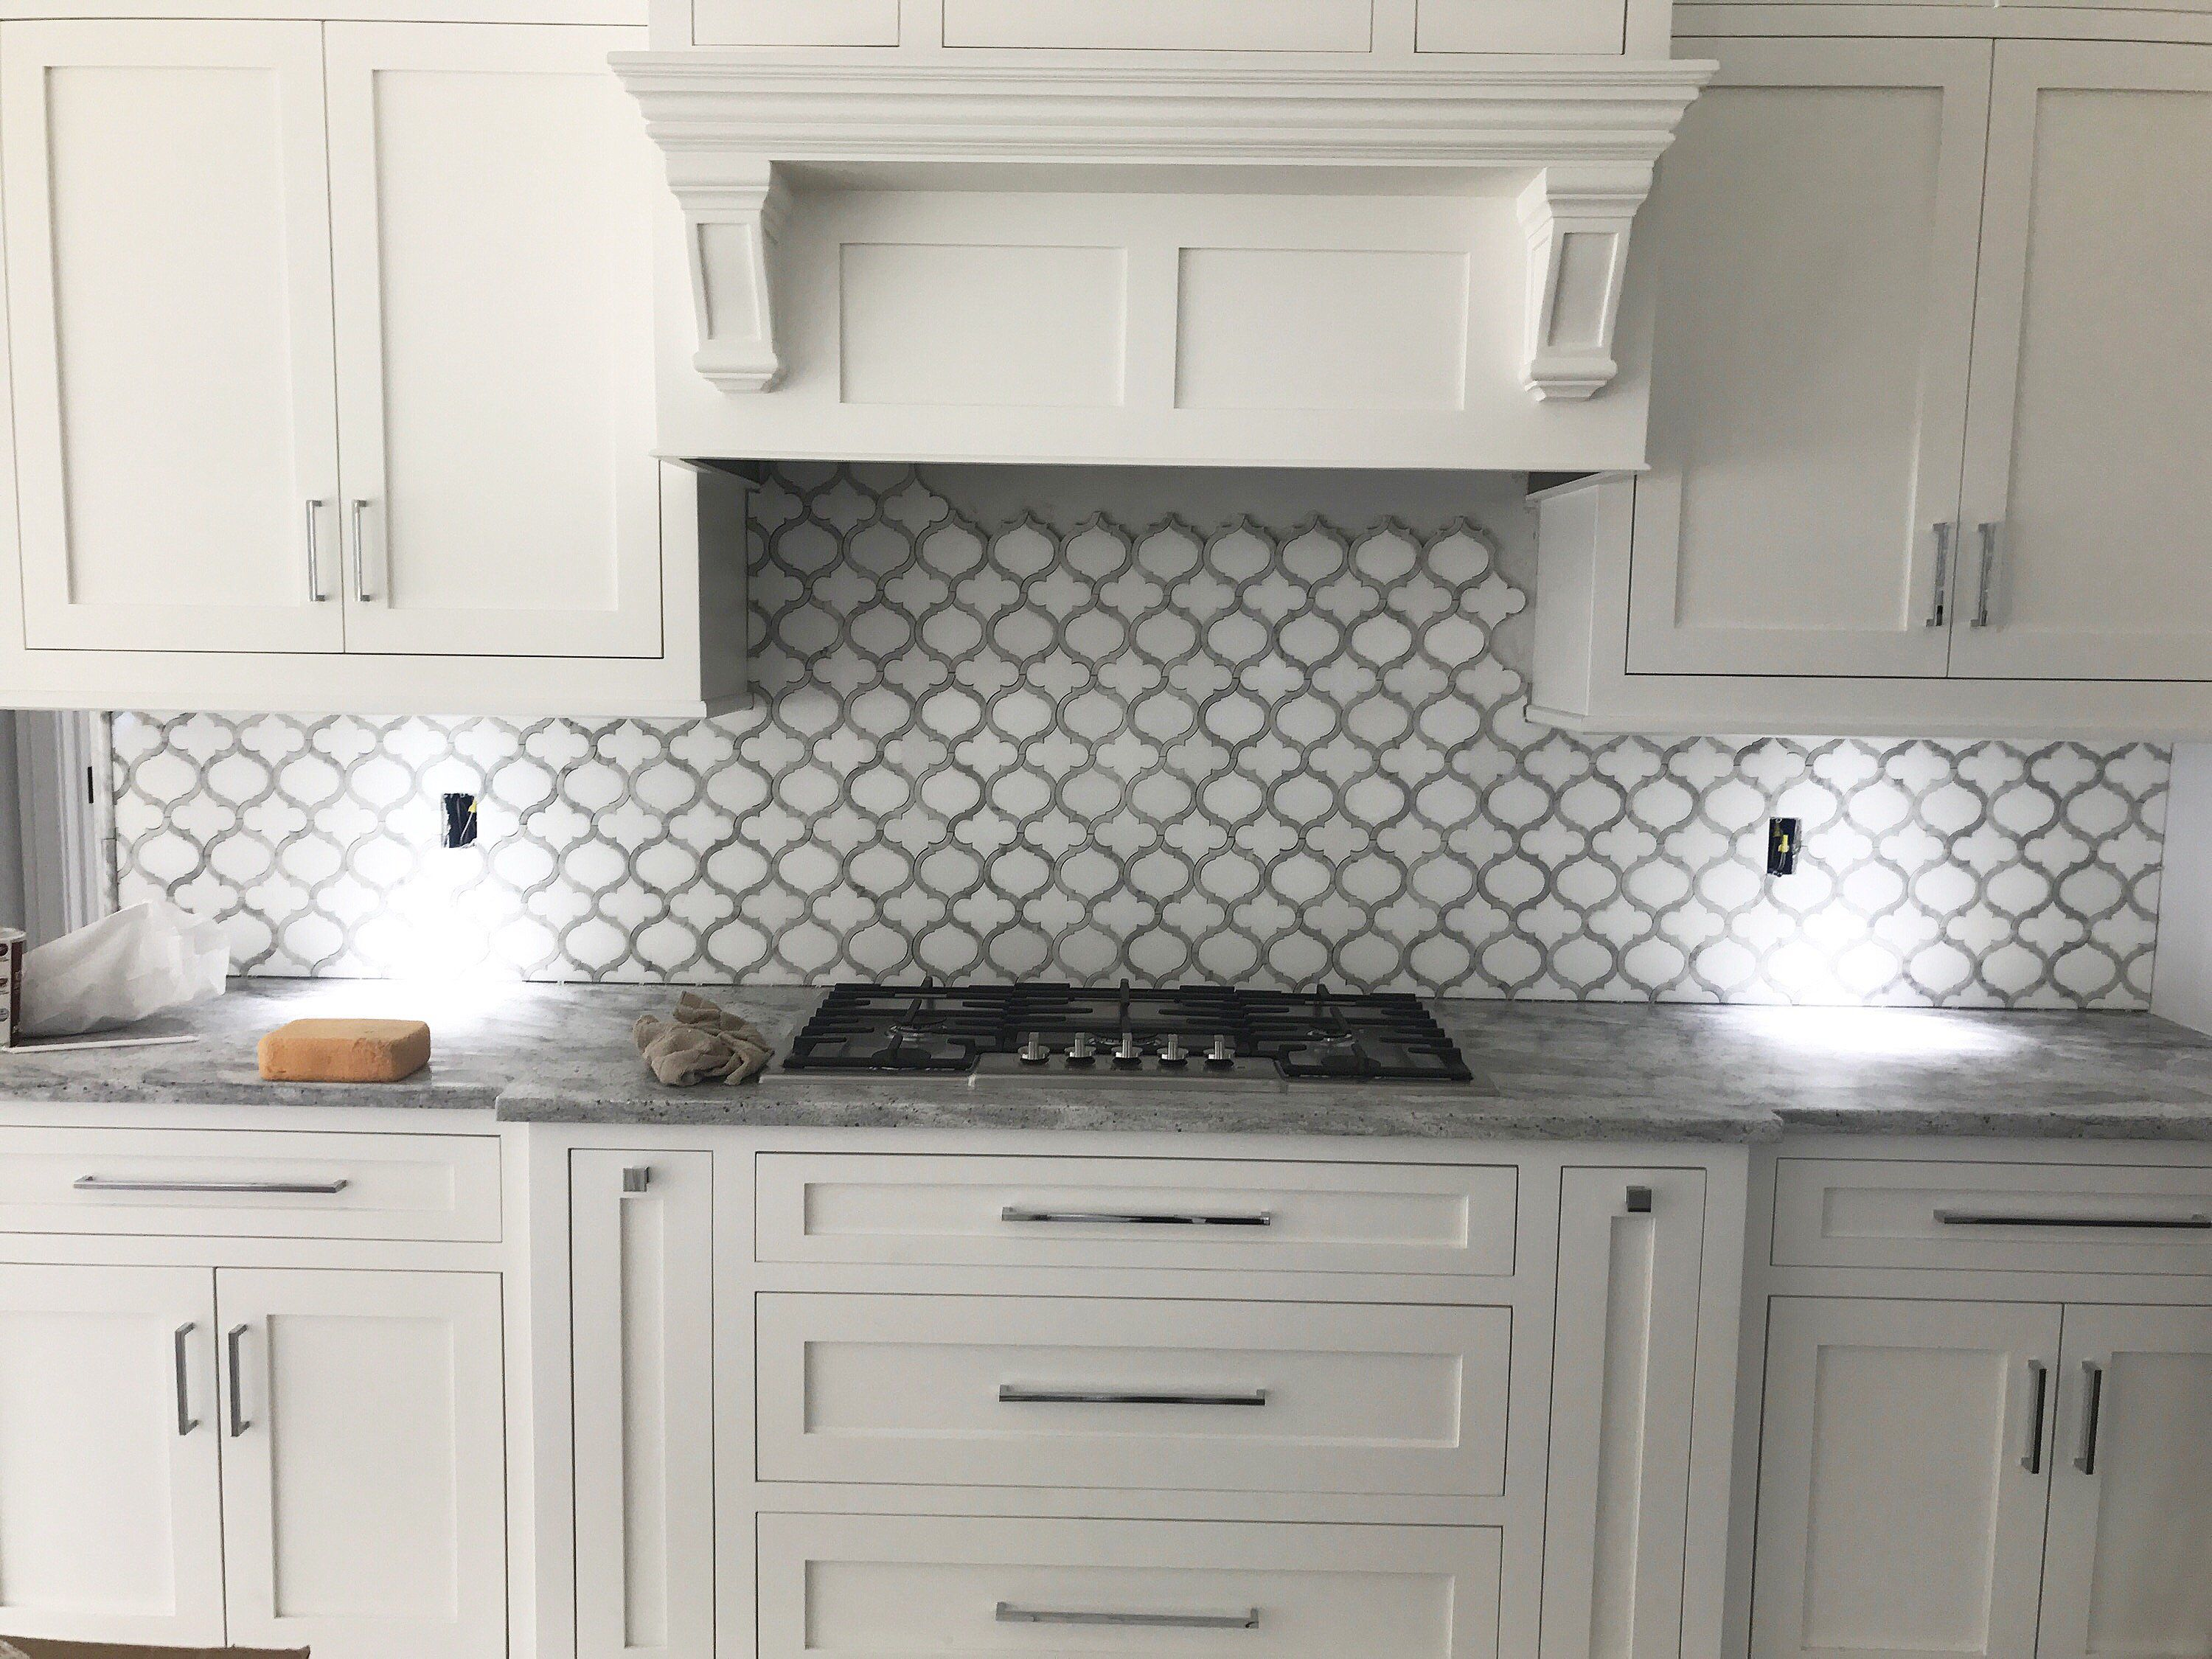 Kitchen Backsplash Ideas Arabesque White Thassos Carrara